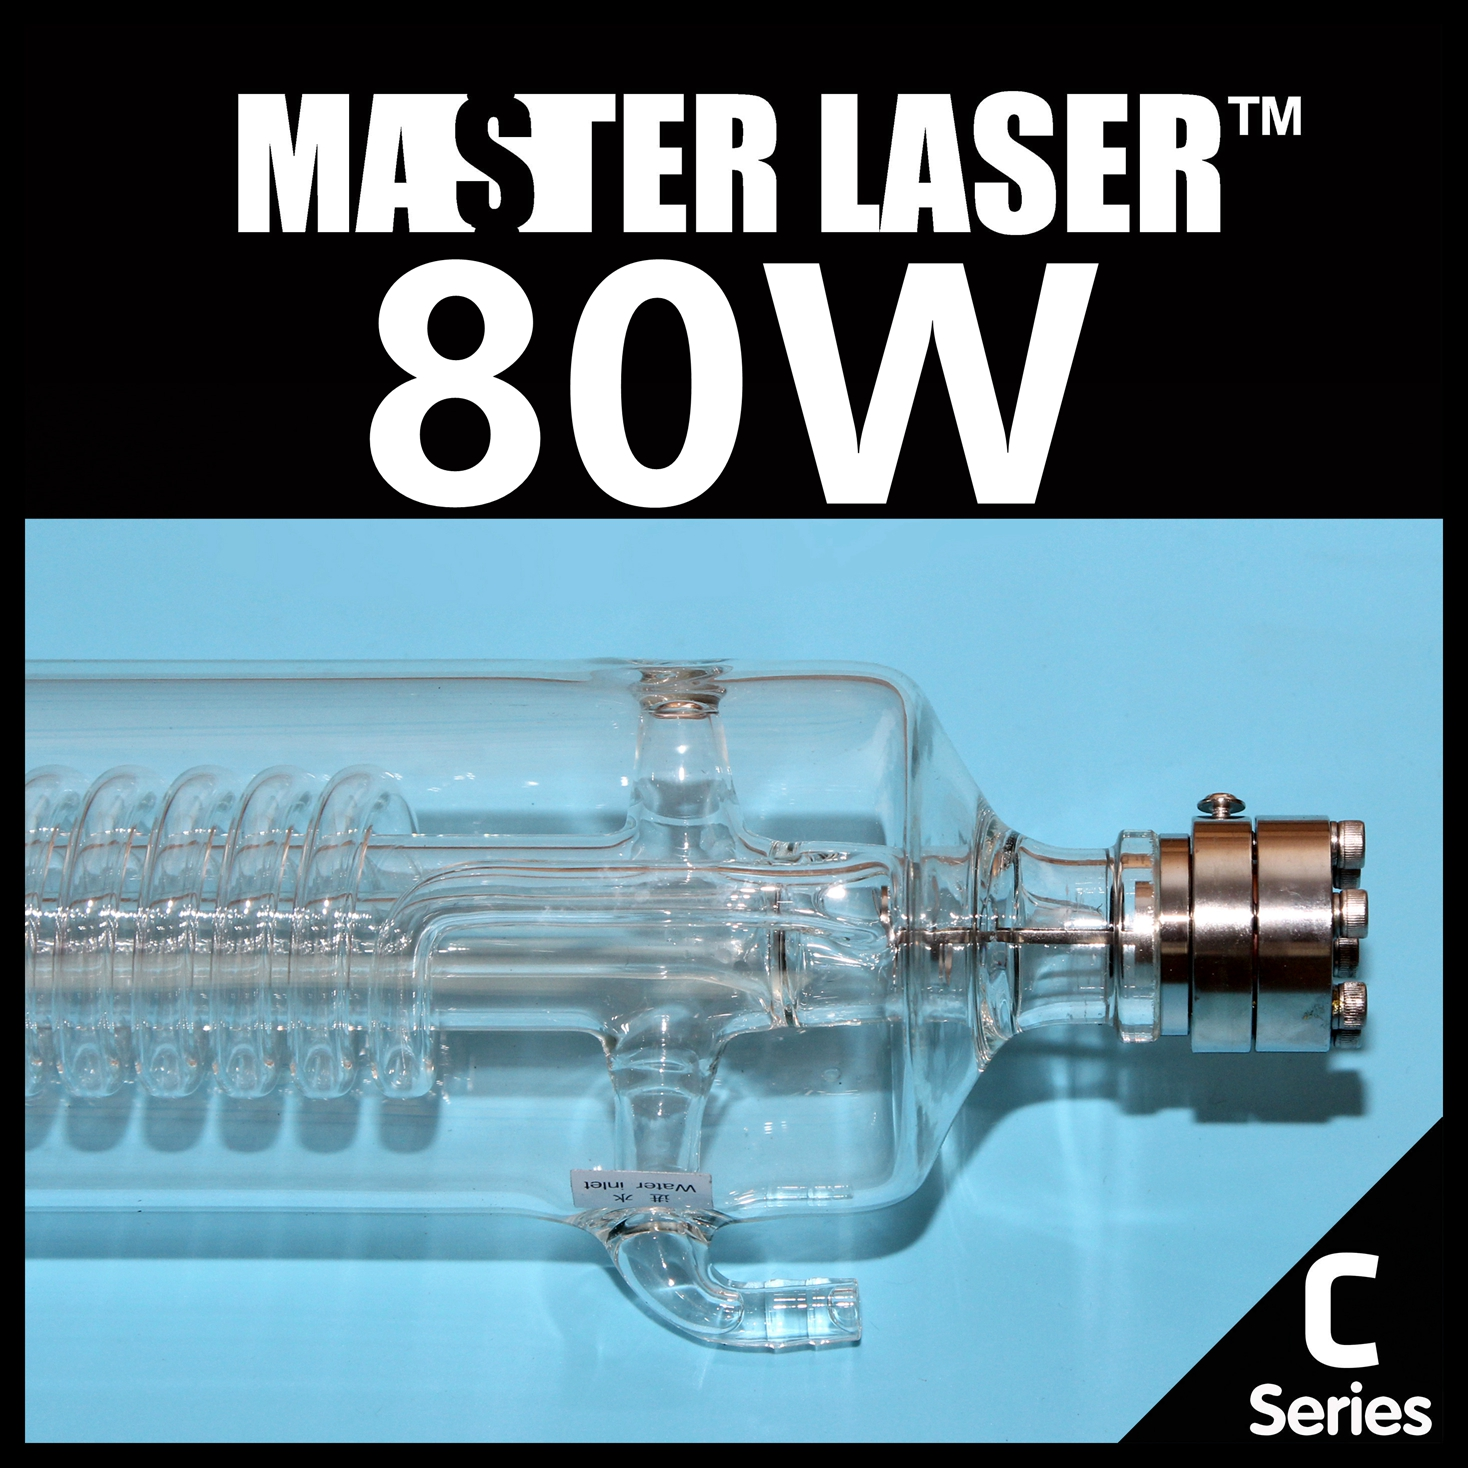 Mean Power 80W Highest 100W Laser Tube  Length 1300mm 80W Laser Tube for Arcylic Laser Engraving Cutting Machine laser power box 80 co2 laser power box 80w gernally laser power box 80w use for co2 laser tube 80w